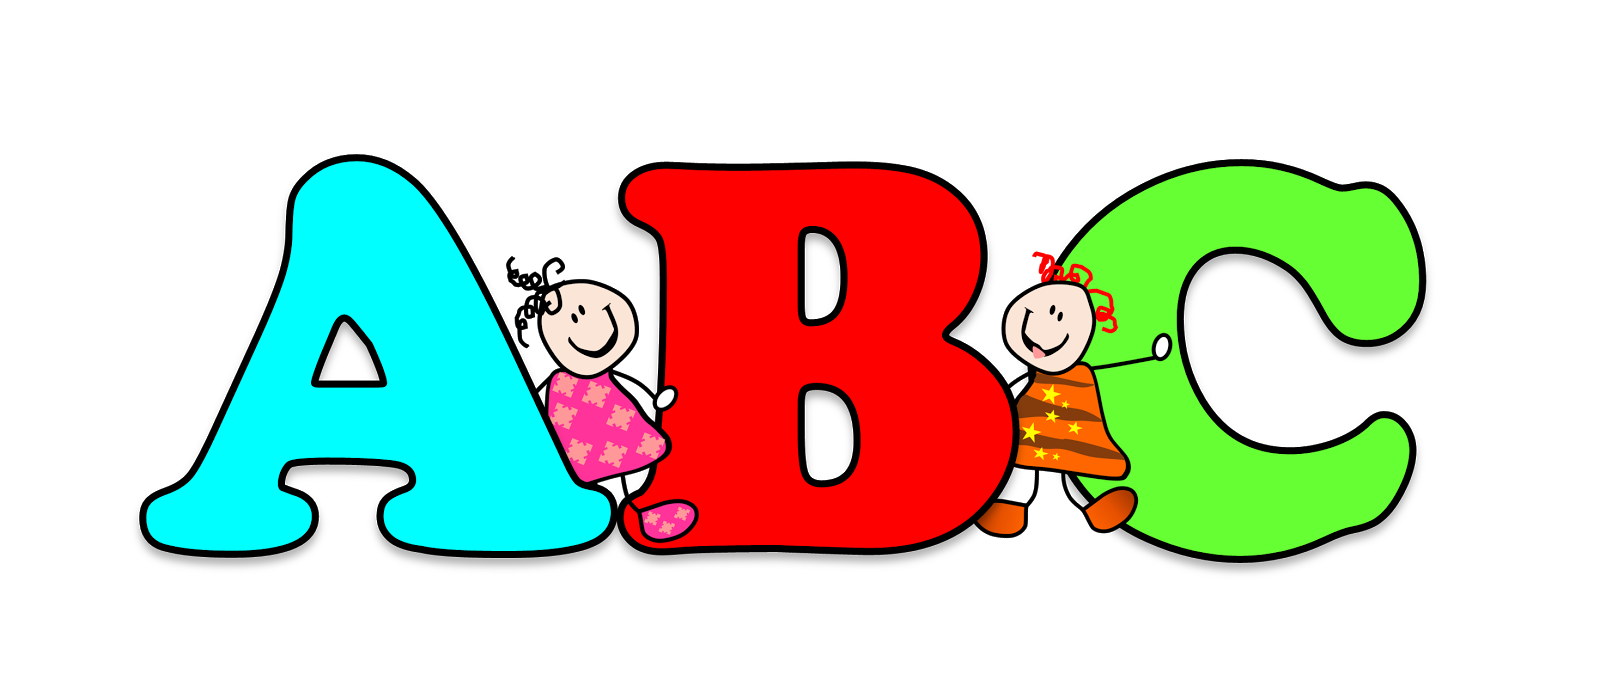 Abc kids clipart clipart library download Free Abc Clipart Pictures - Clipartix clipart library download